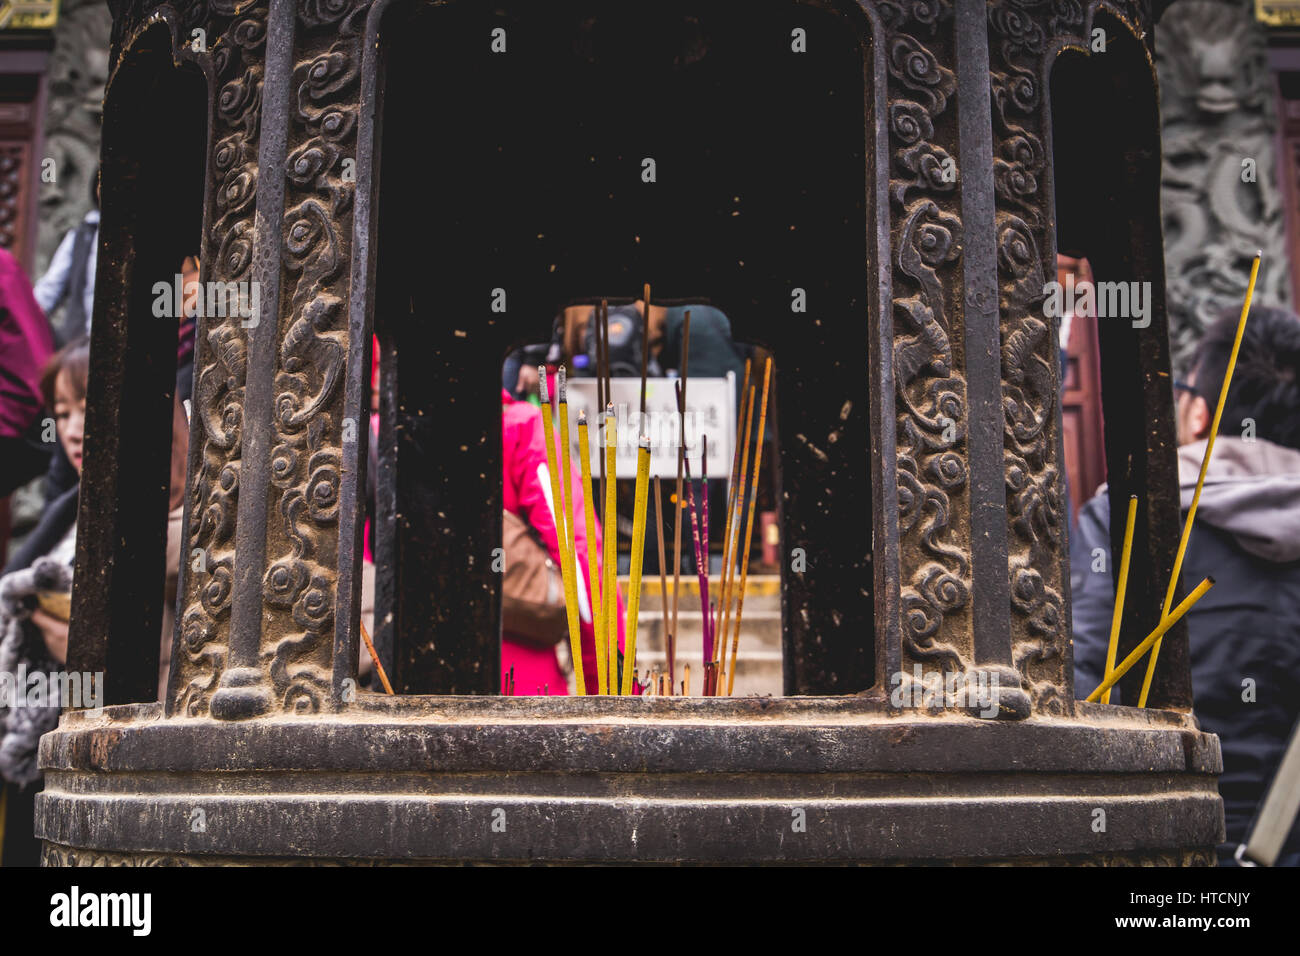 Chinese Incense Sticks Burning at Po Lin Monastery. - Stock Image